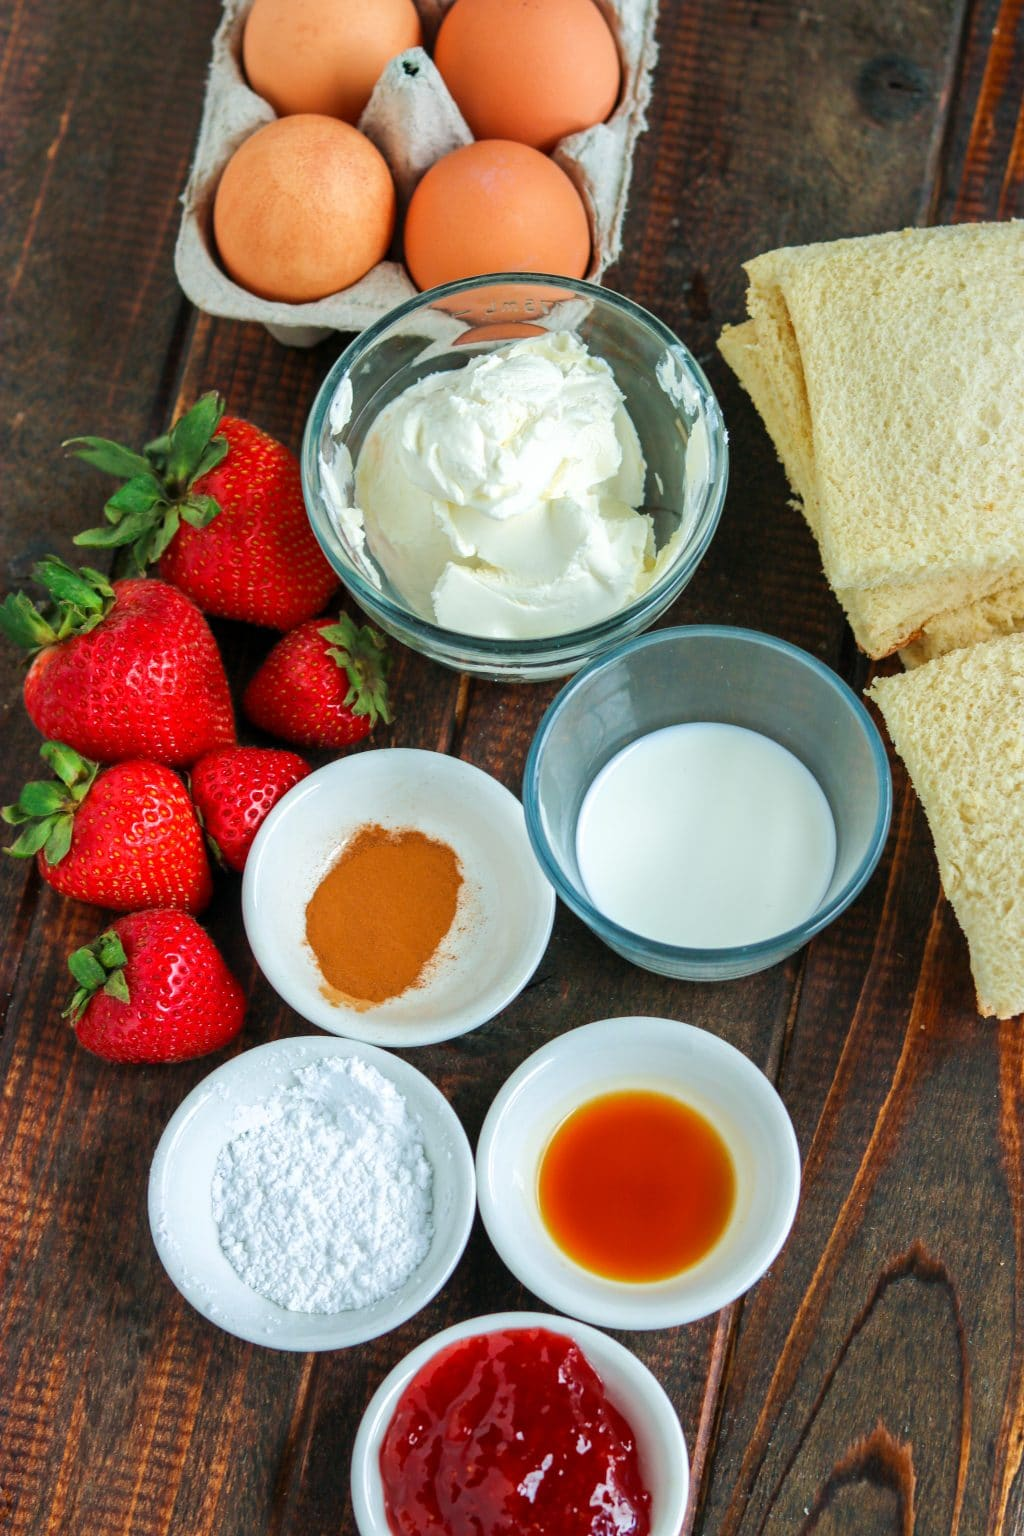 Ingredients for strawberry cheesecake French toast rolls in individual bowls, strawberries, eggs in a carton, and bread slices on wooden table.